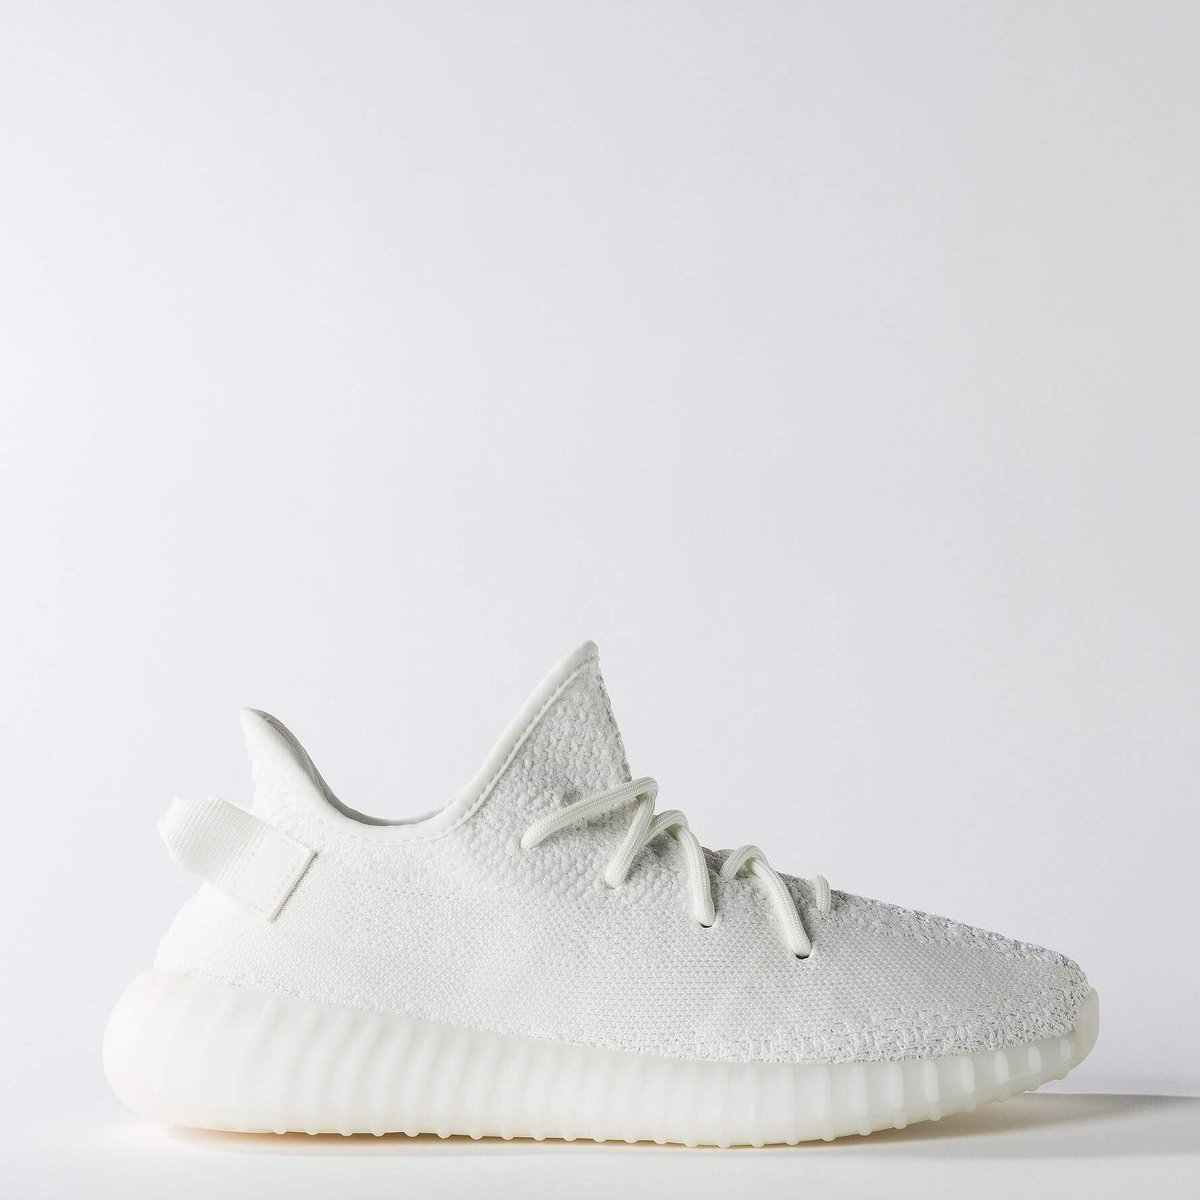 f1a979f809c The Cream White Yeezy Boost 350 V2 is rumored to release two weeks from  today on Saturday